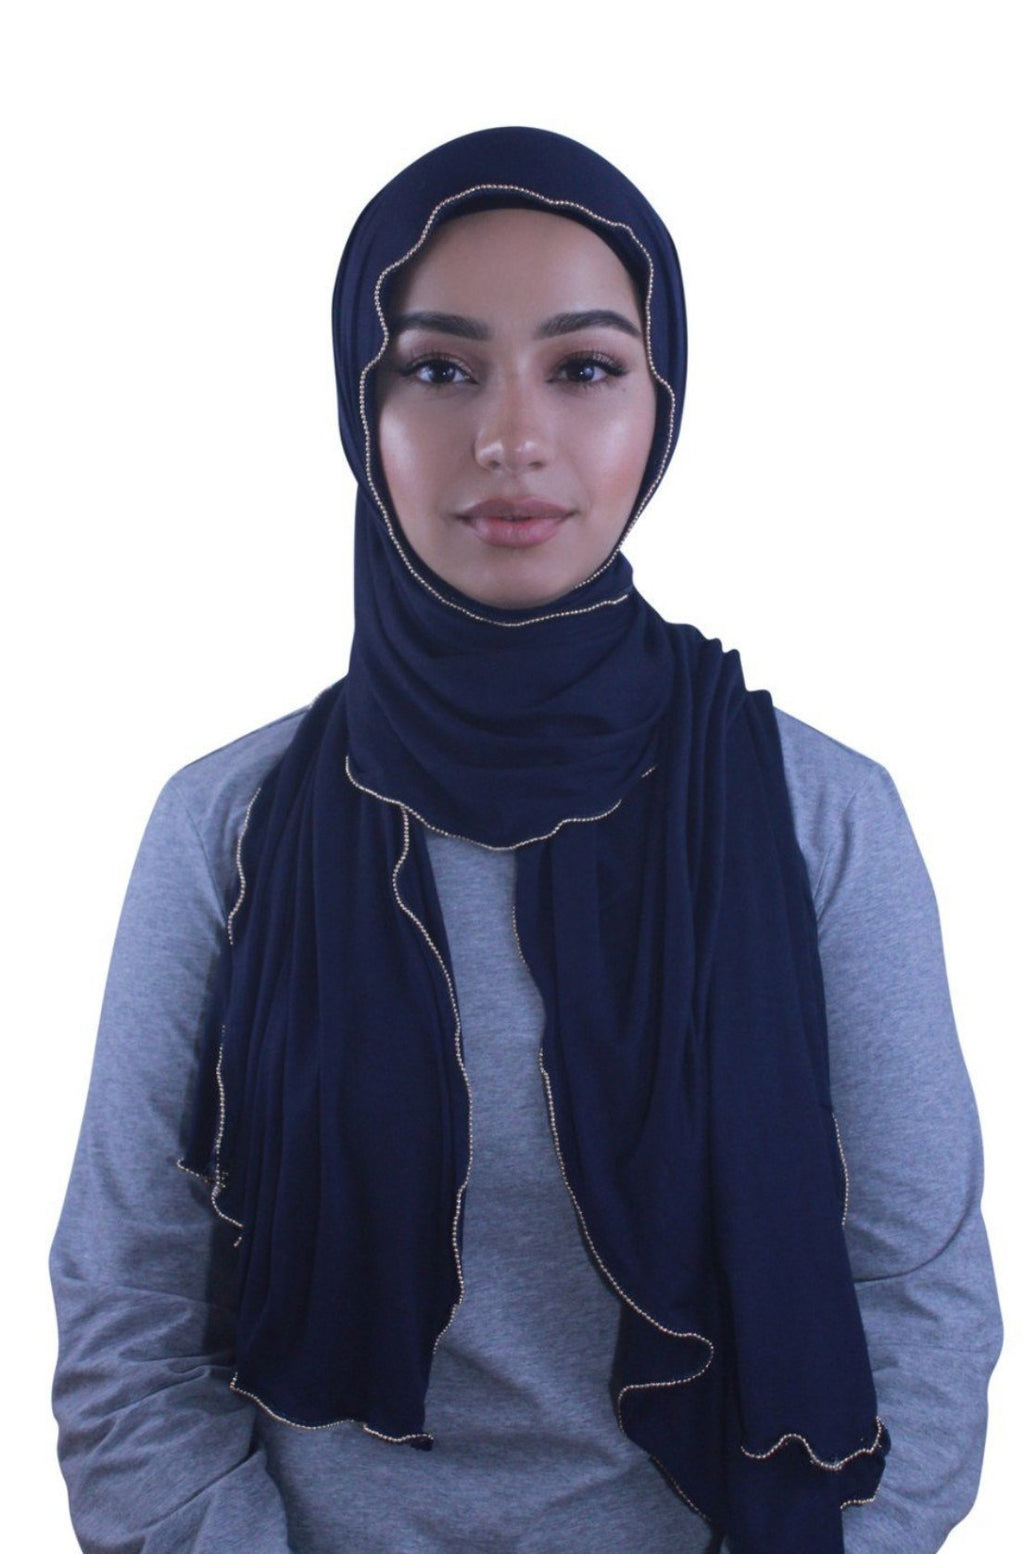 Navy Blue Jersey Solid With Beaded Trim Hijab - Abaya, Hijabs, Jilbabs, on sale now at UrbanModesty.com